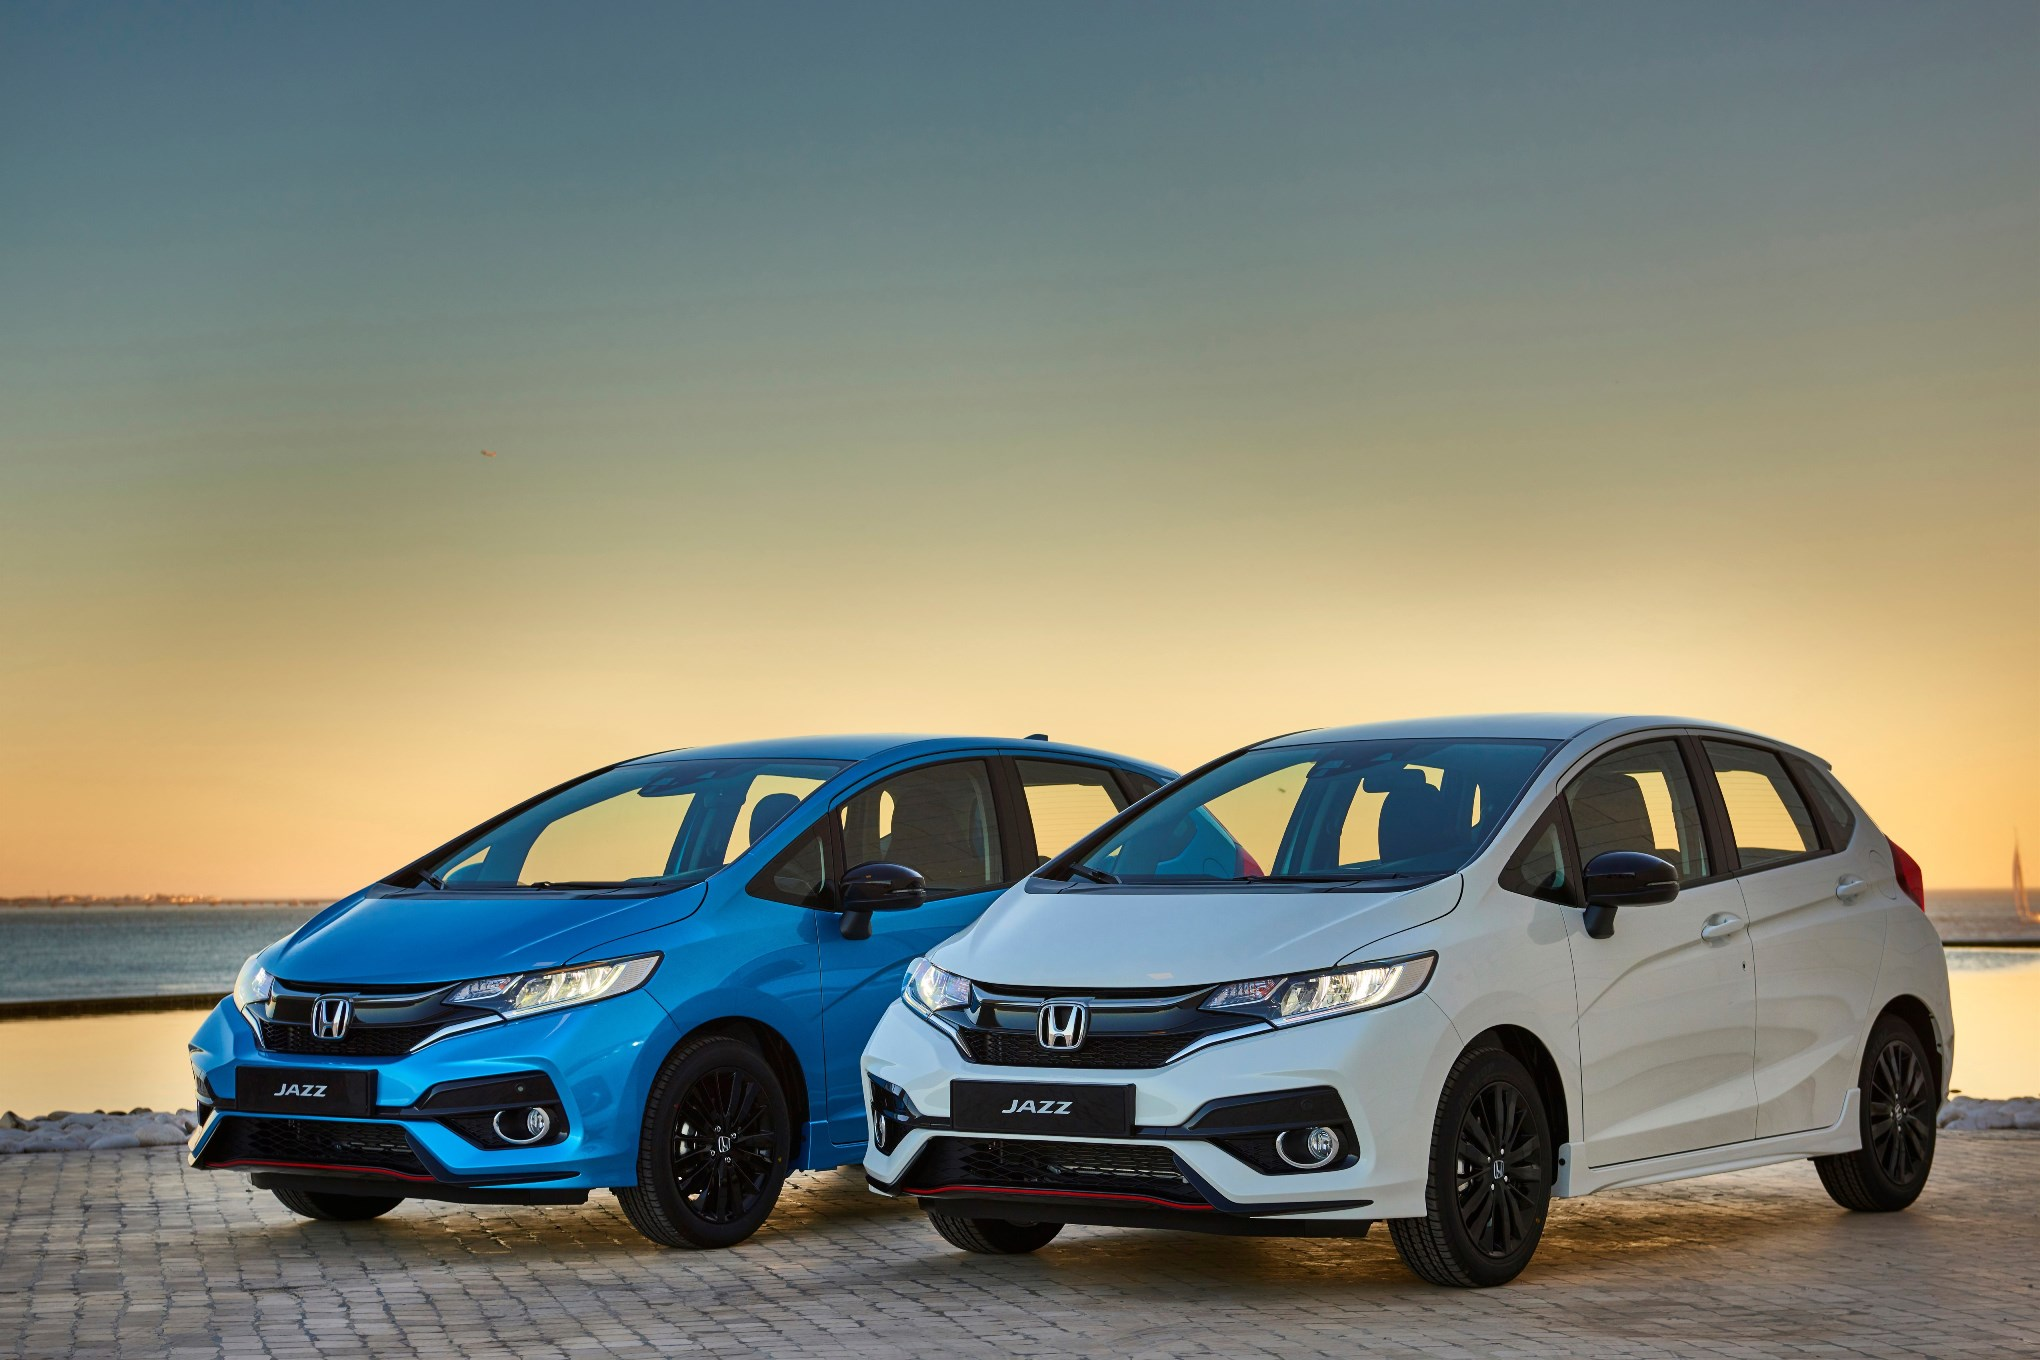 Honda Jazz facelifted for 2018 with styling tweaks